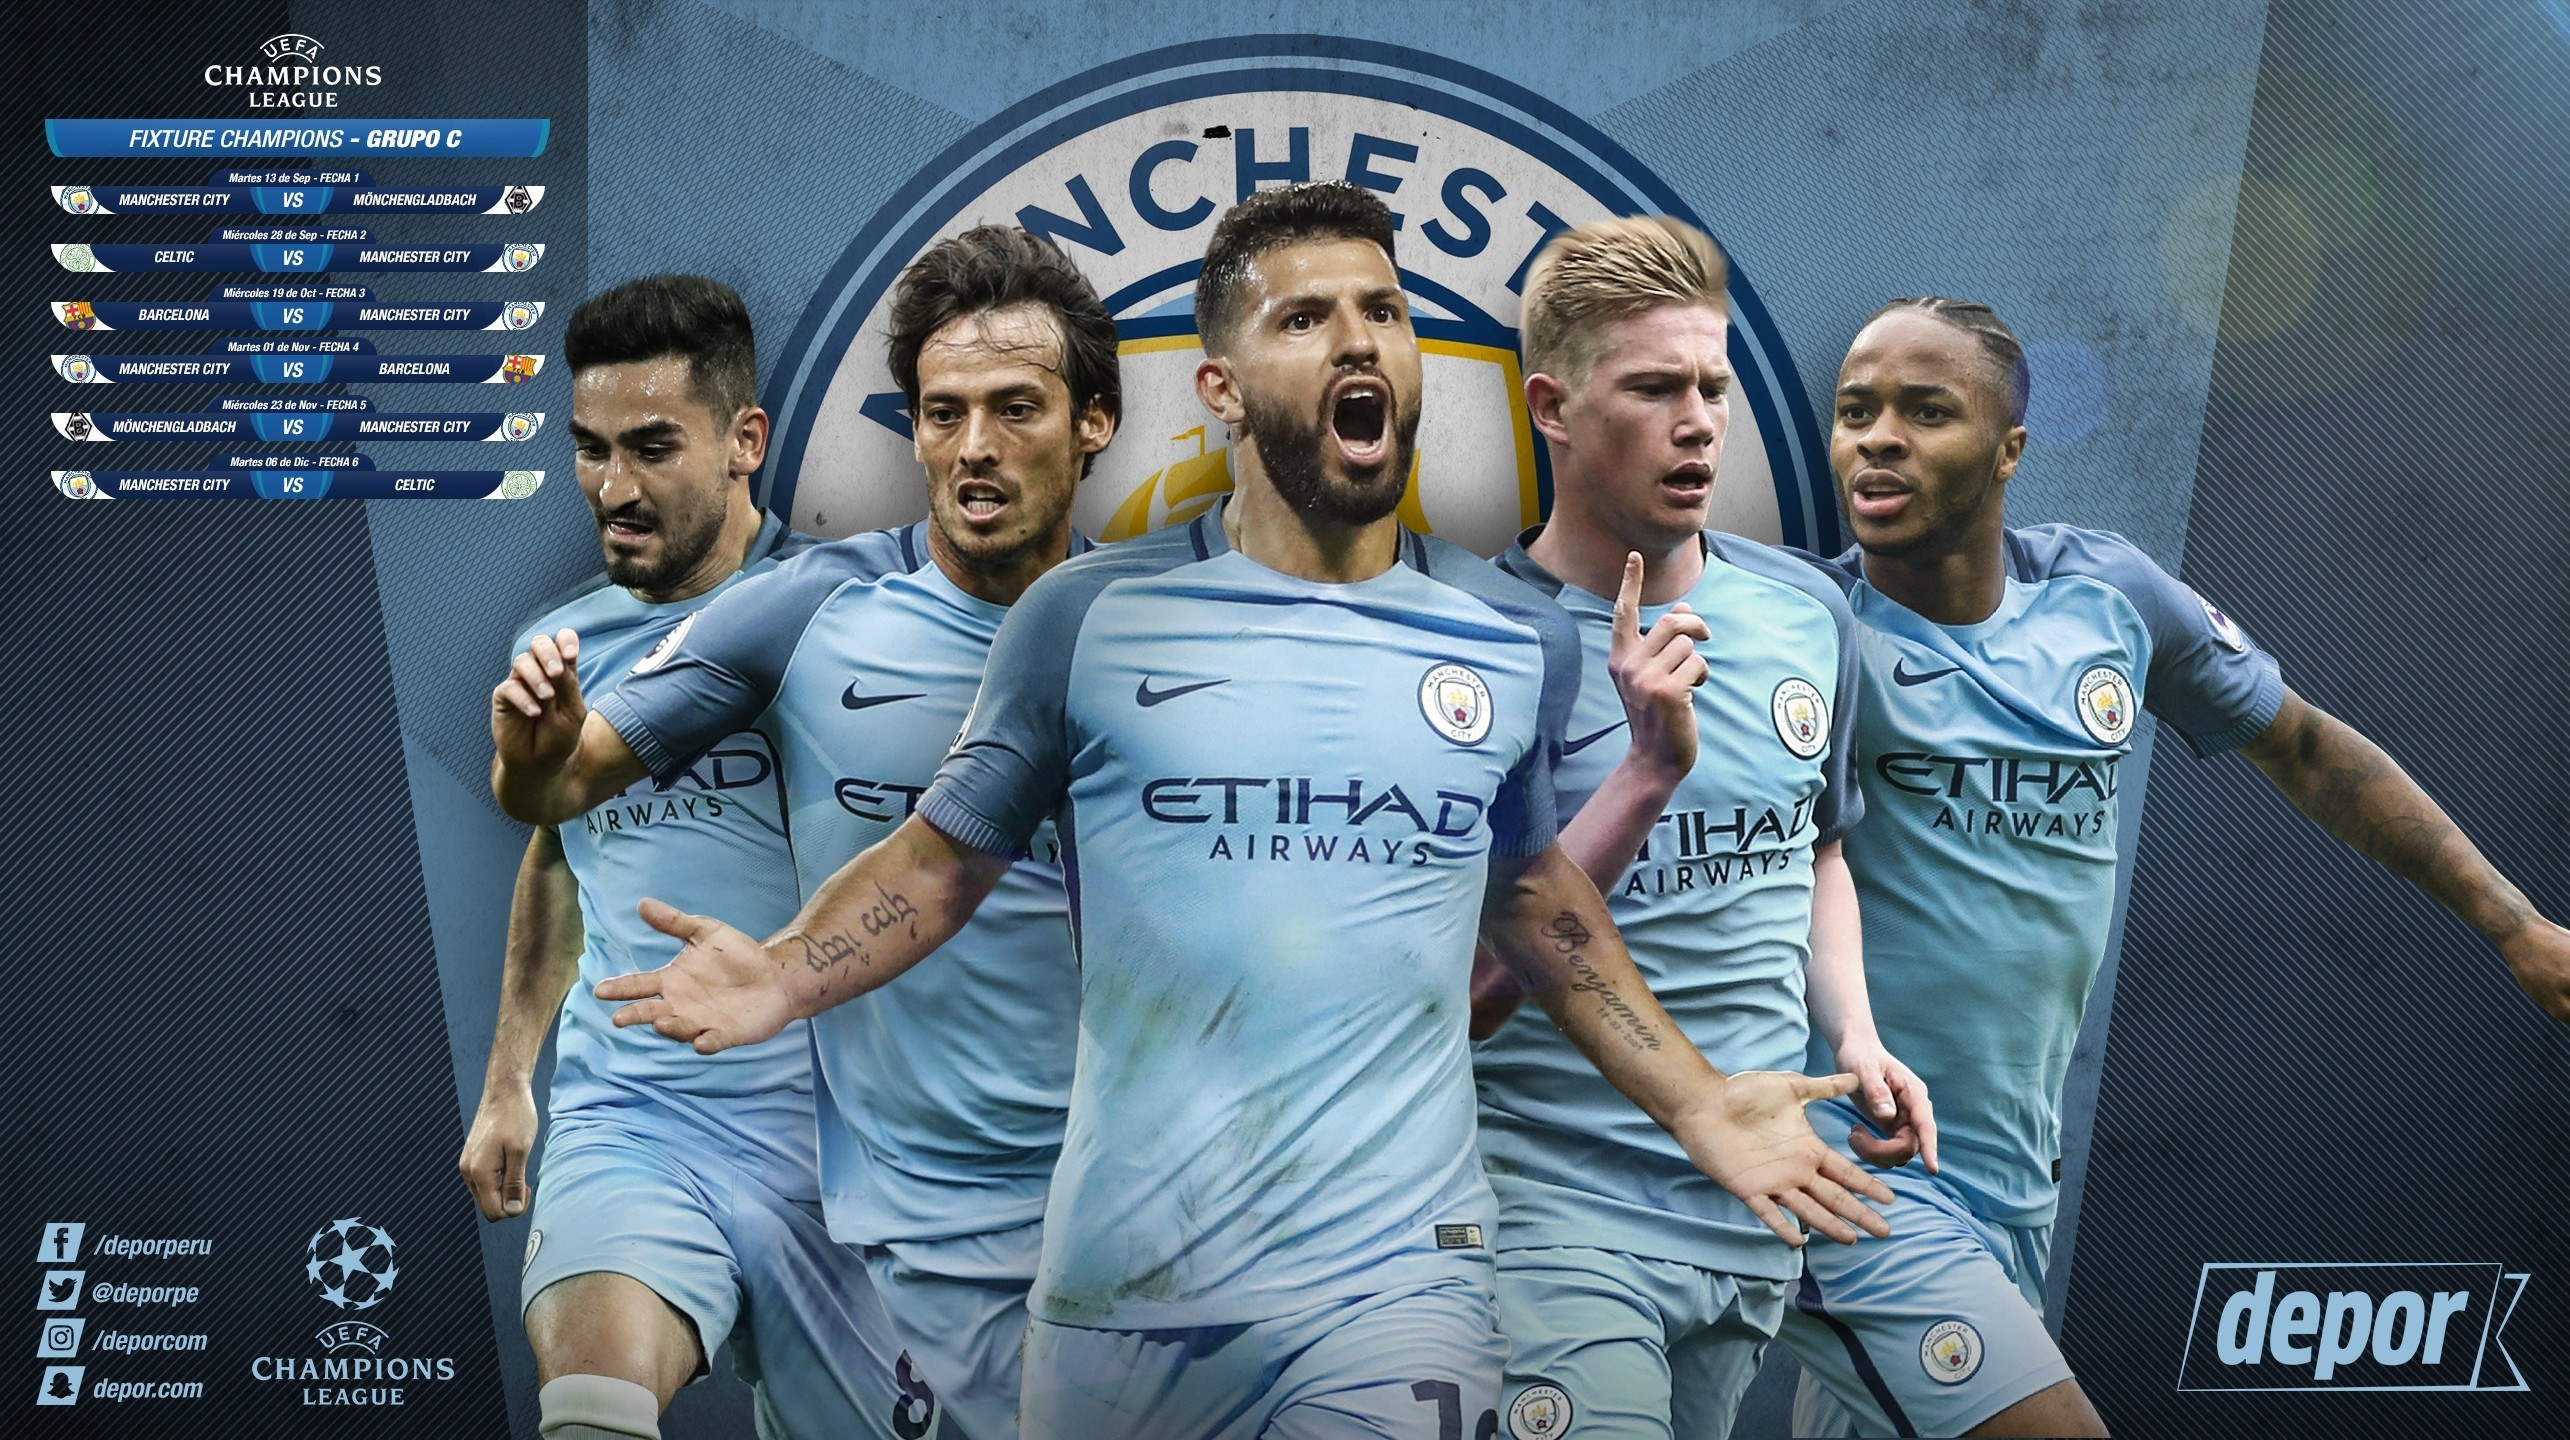 Manchester City Wallpaper 2018 85 Images